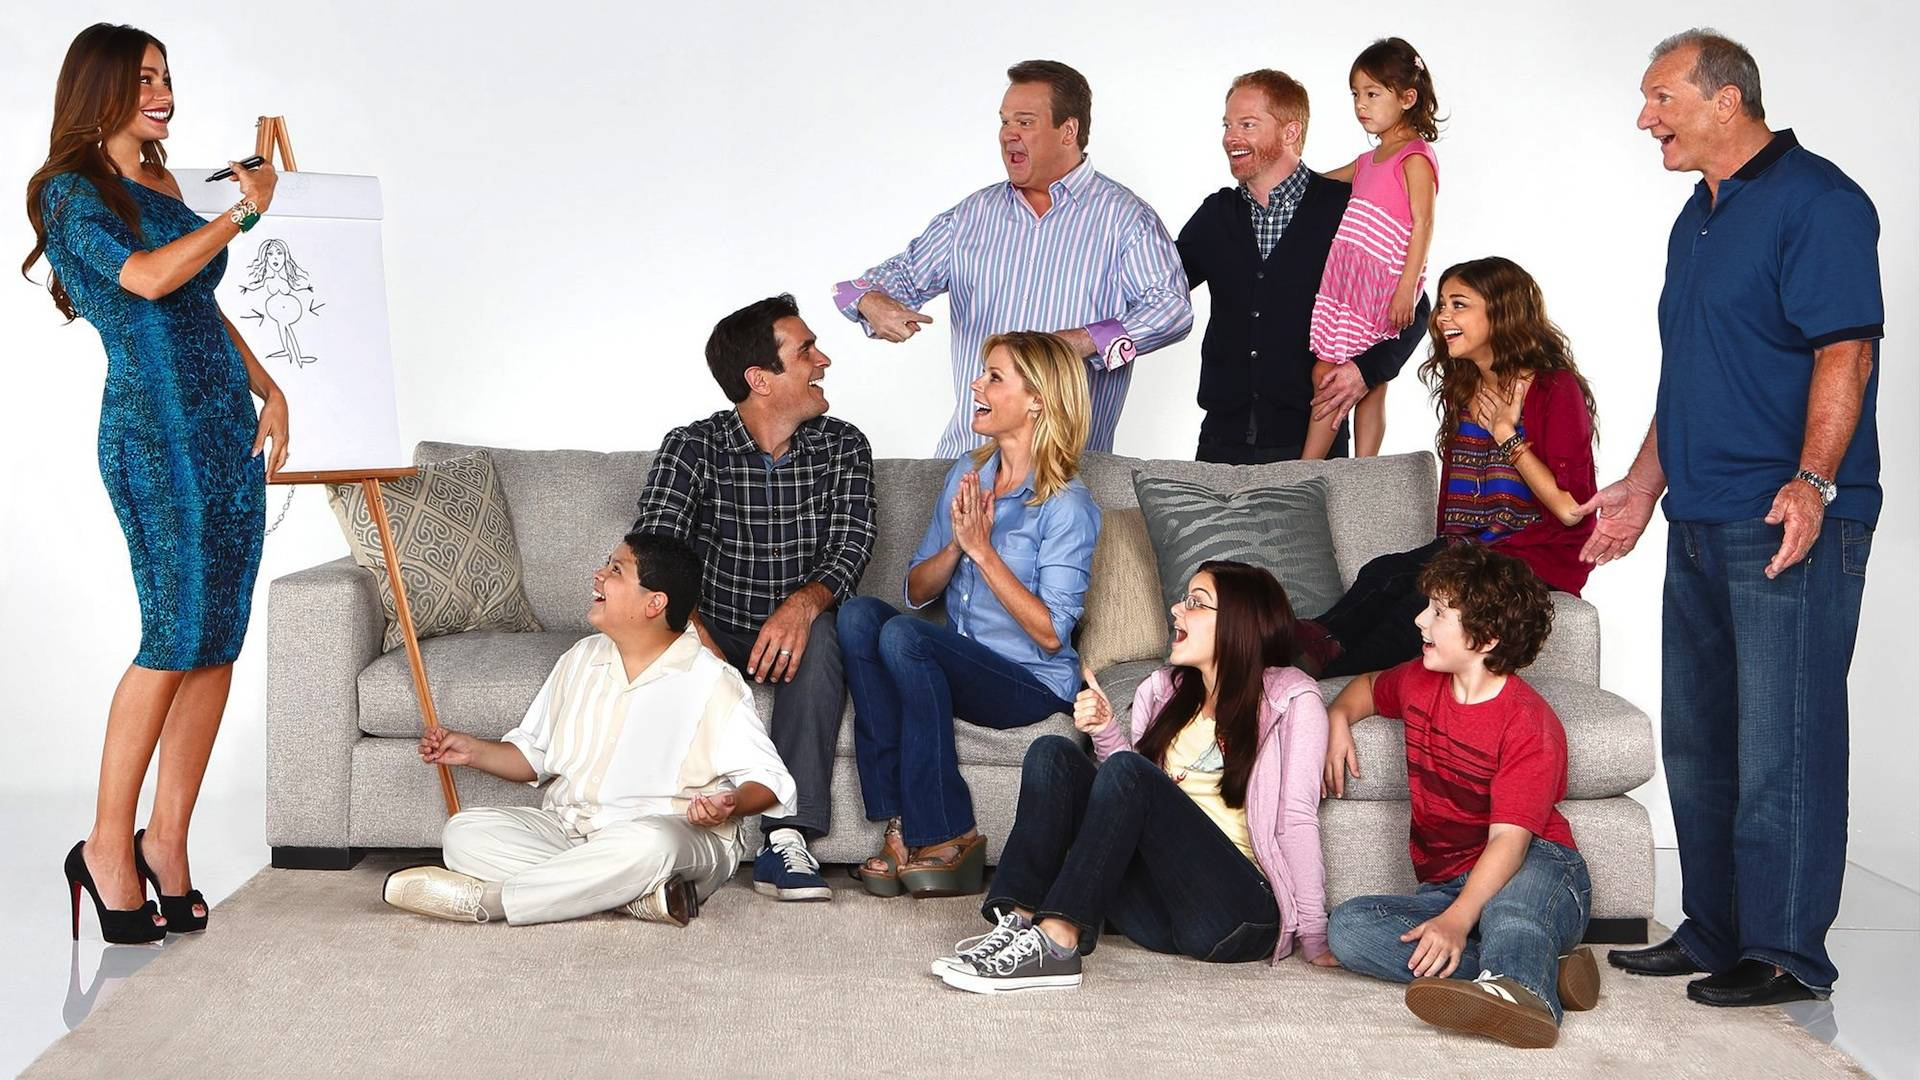 Modern family wallpaper 17 for Modern family wallpaper